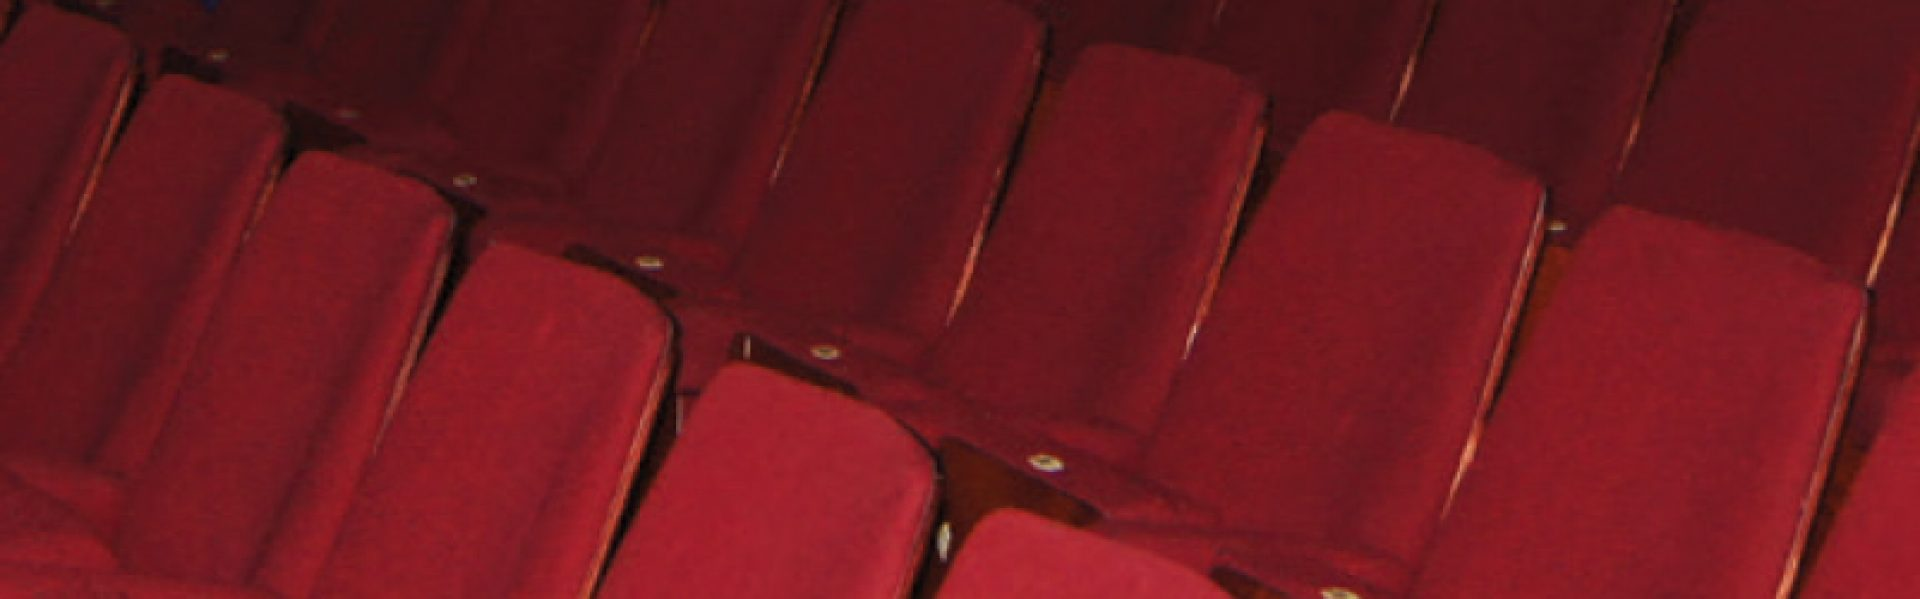 The Royalty Theatre